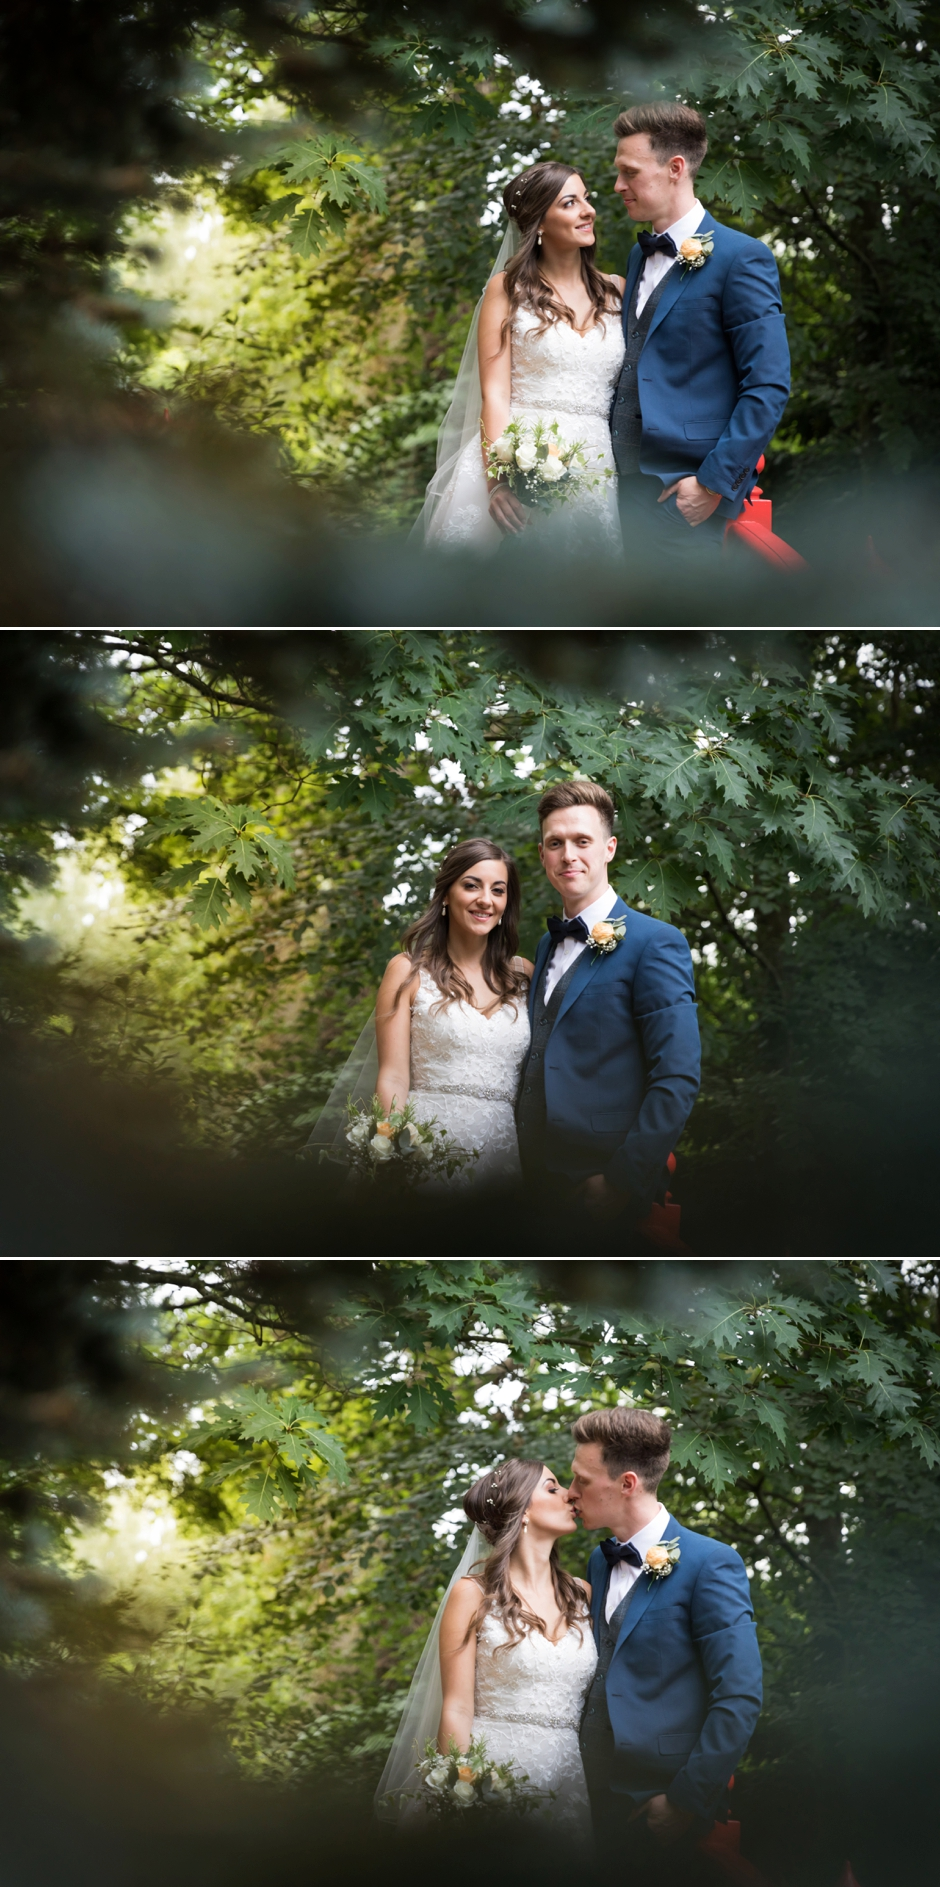 054-rivervale-barn-hampshire-wedding-photography-bride-and-groom